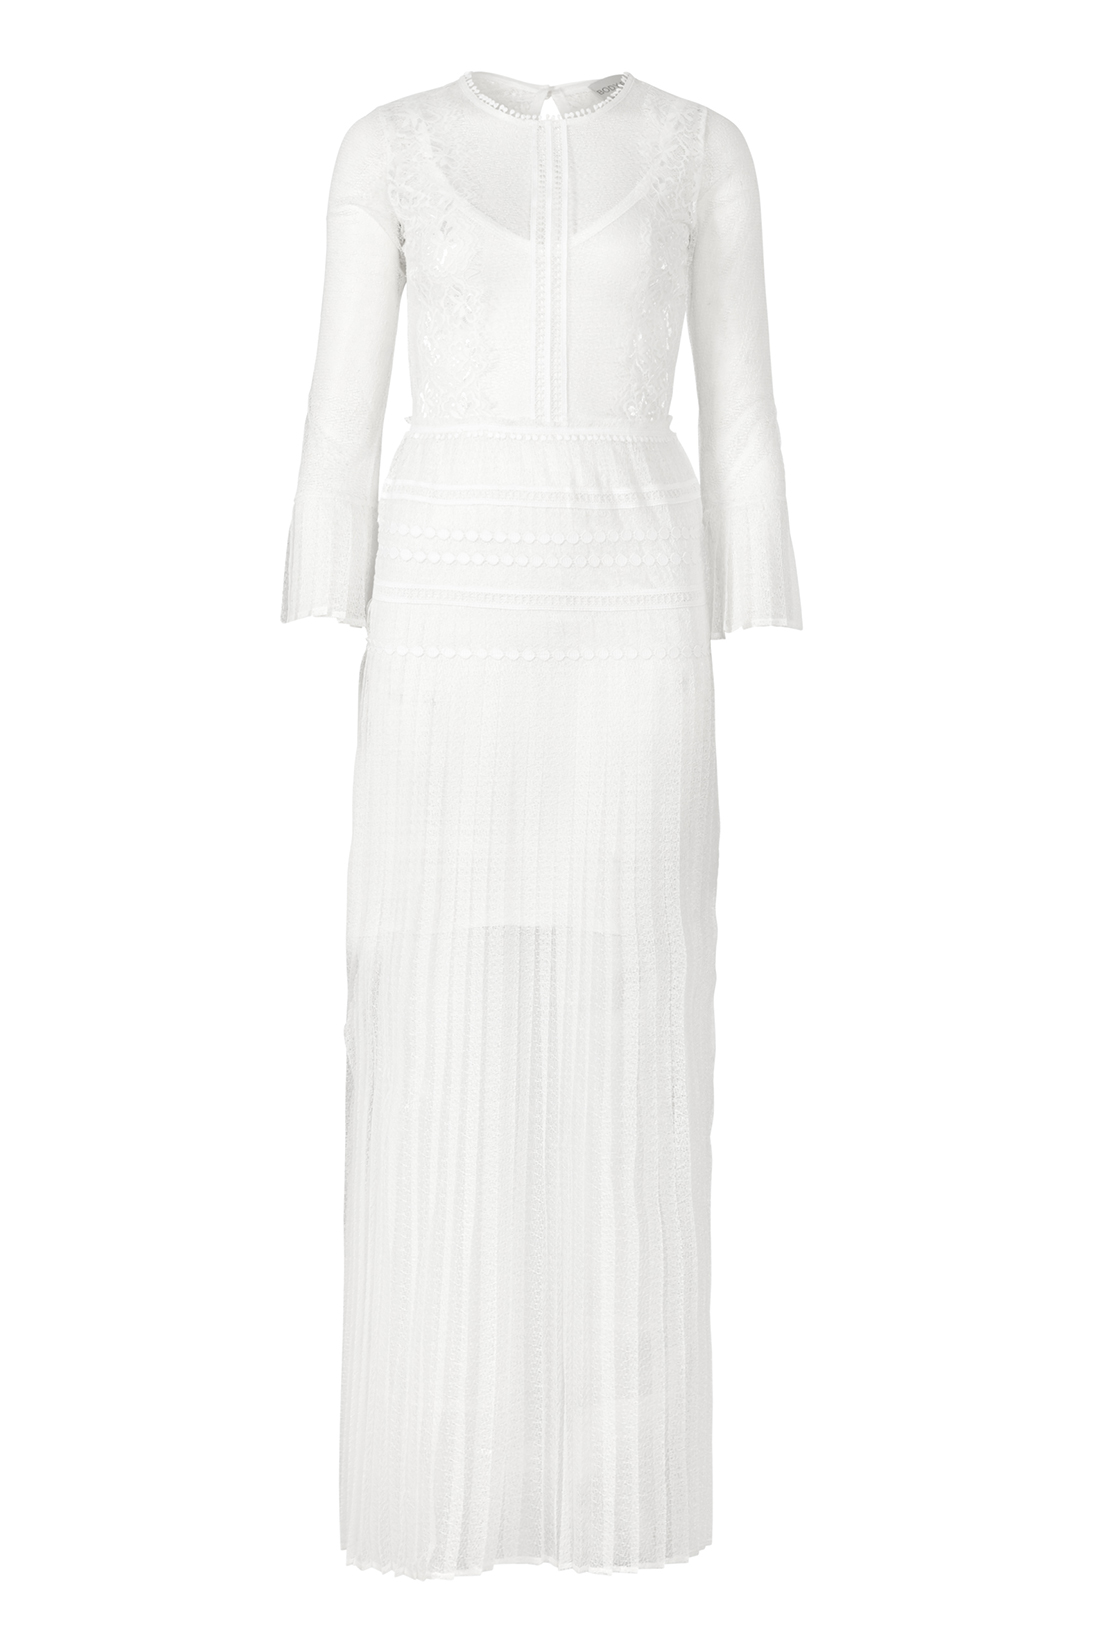 The Bluebell Ivory by Body Frock front